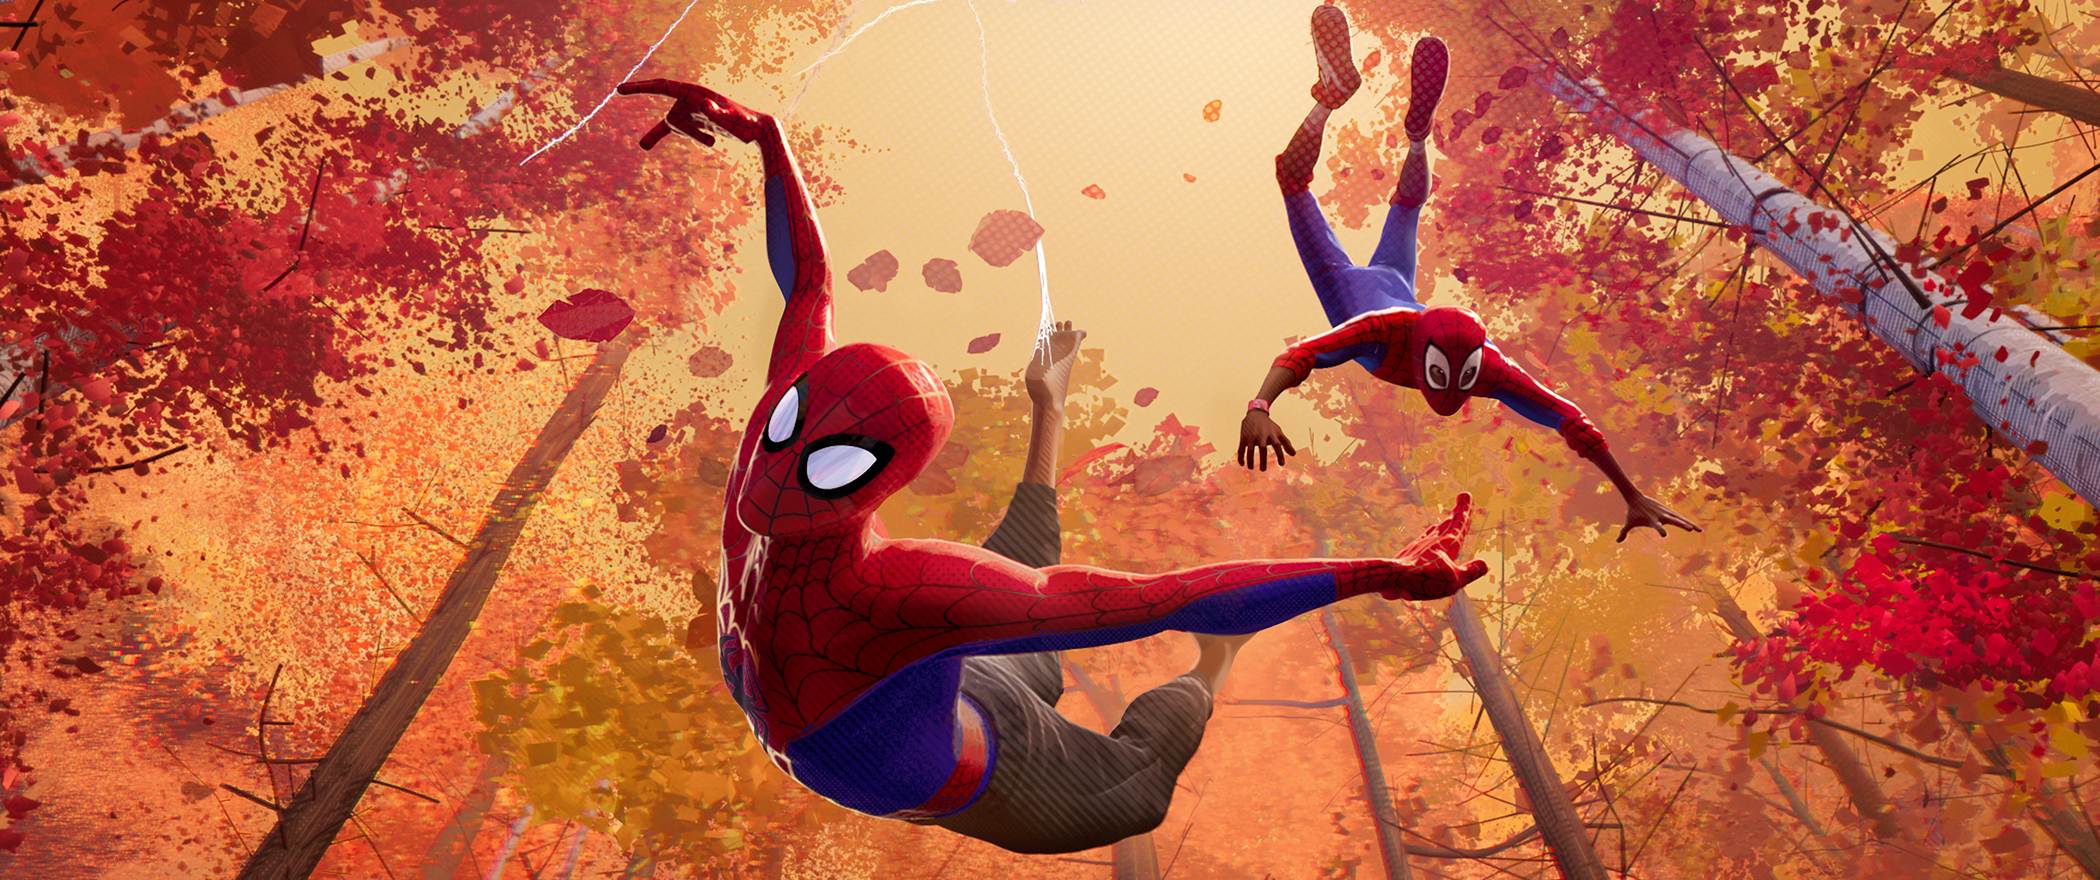 6 reasons why 'Spider-Man: Into the Spider-Verse' isn't your average Spidey film